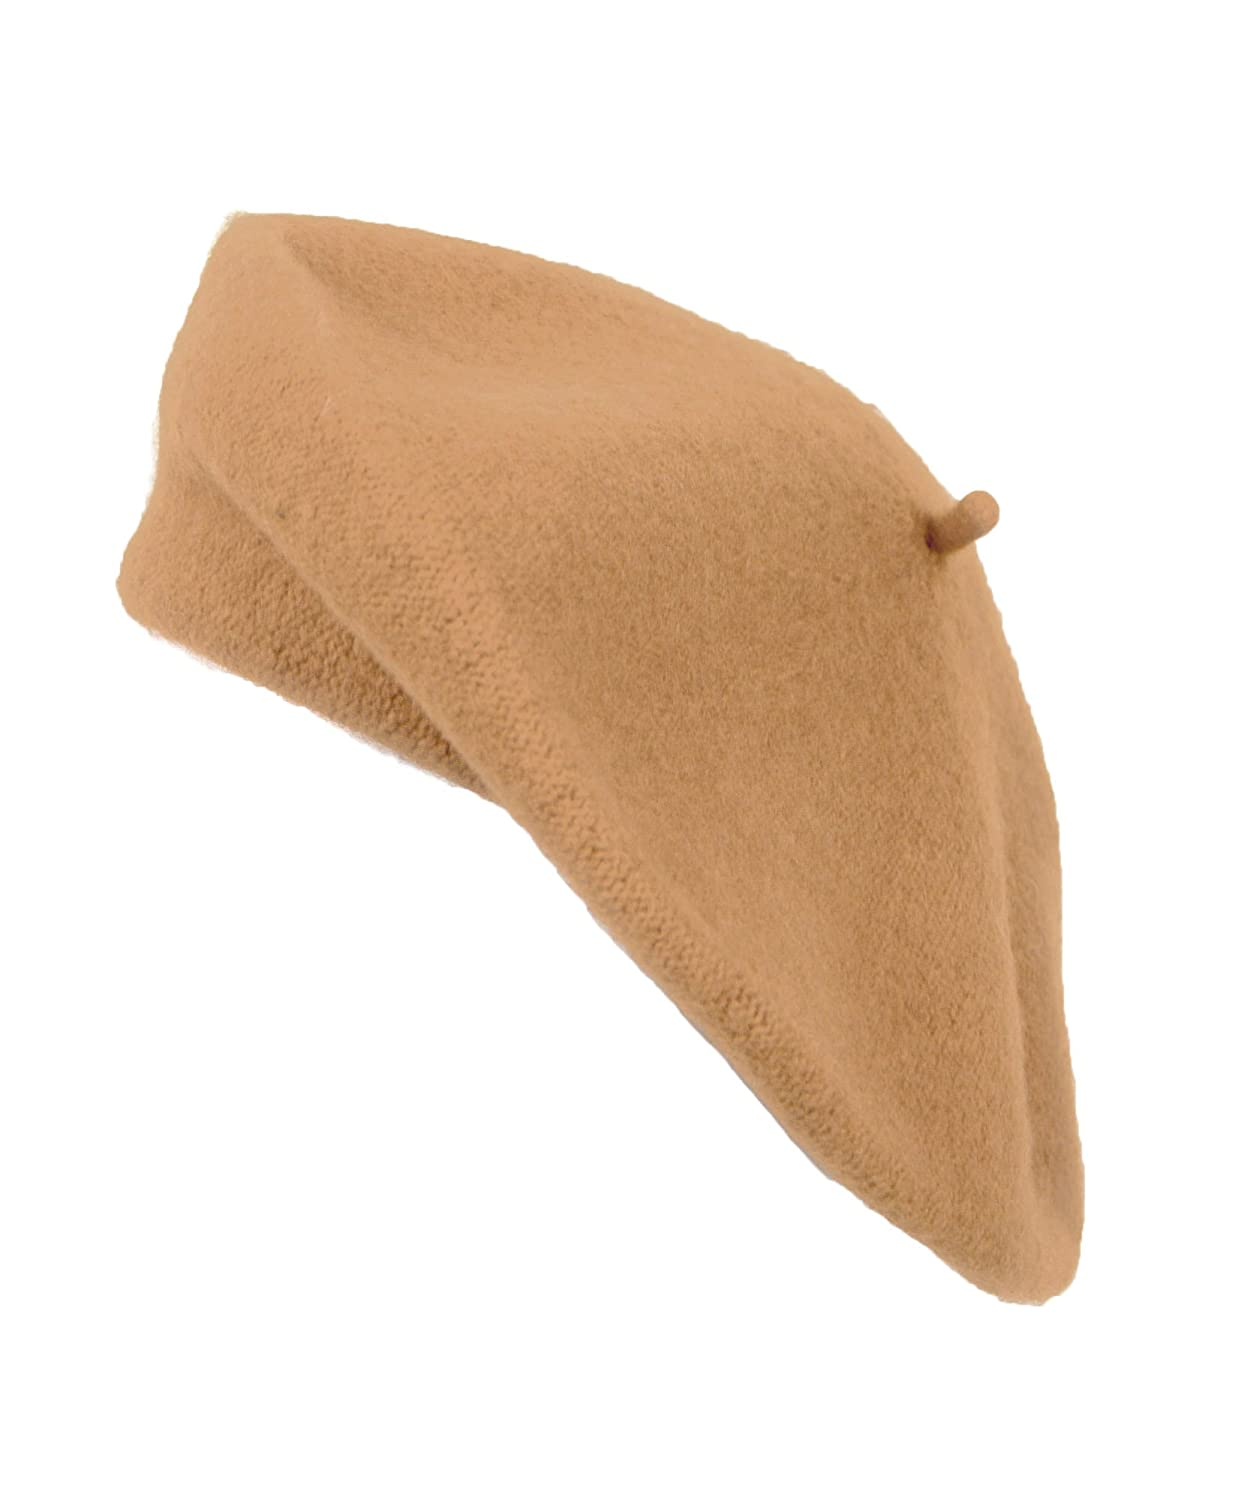 8364b1192 Nollia Solid Color French Wool Beret